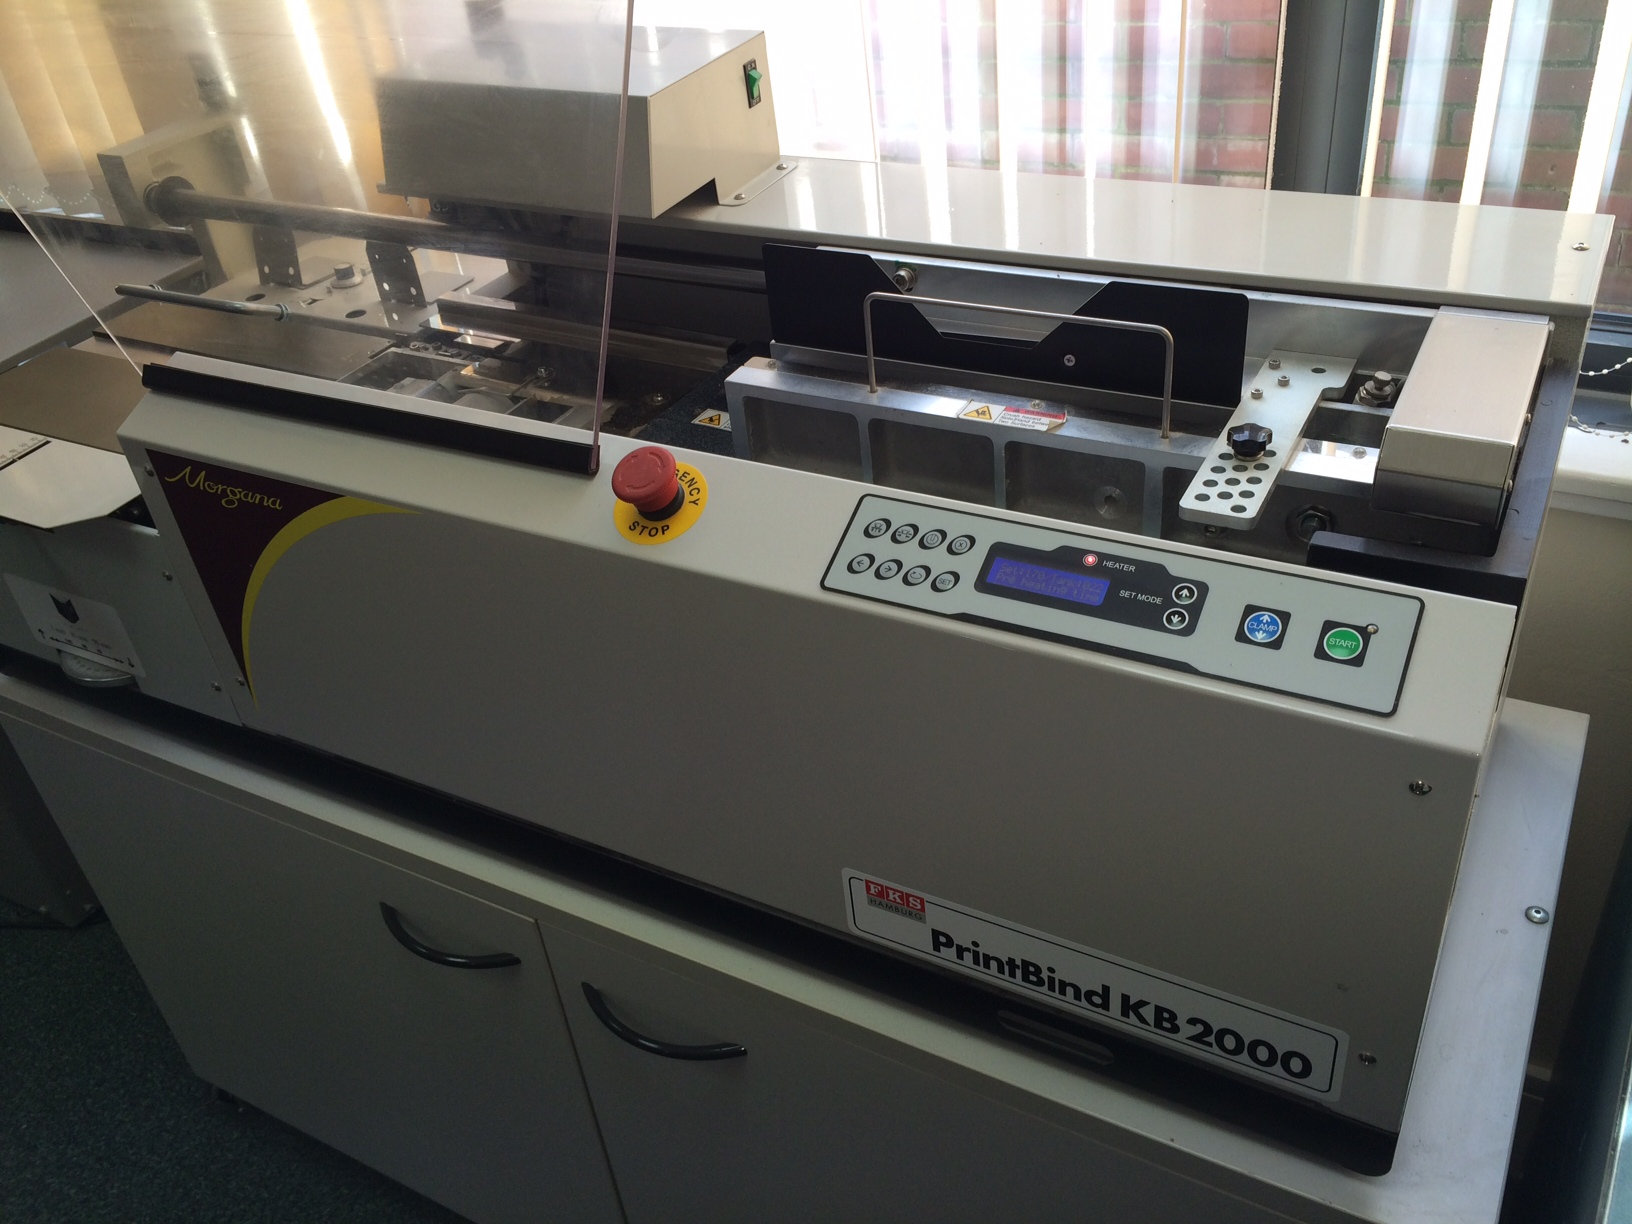 Morgana Printbind KB2000 Perfect Binder